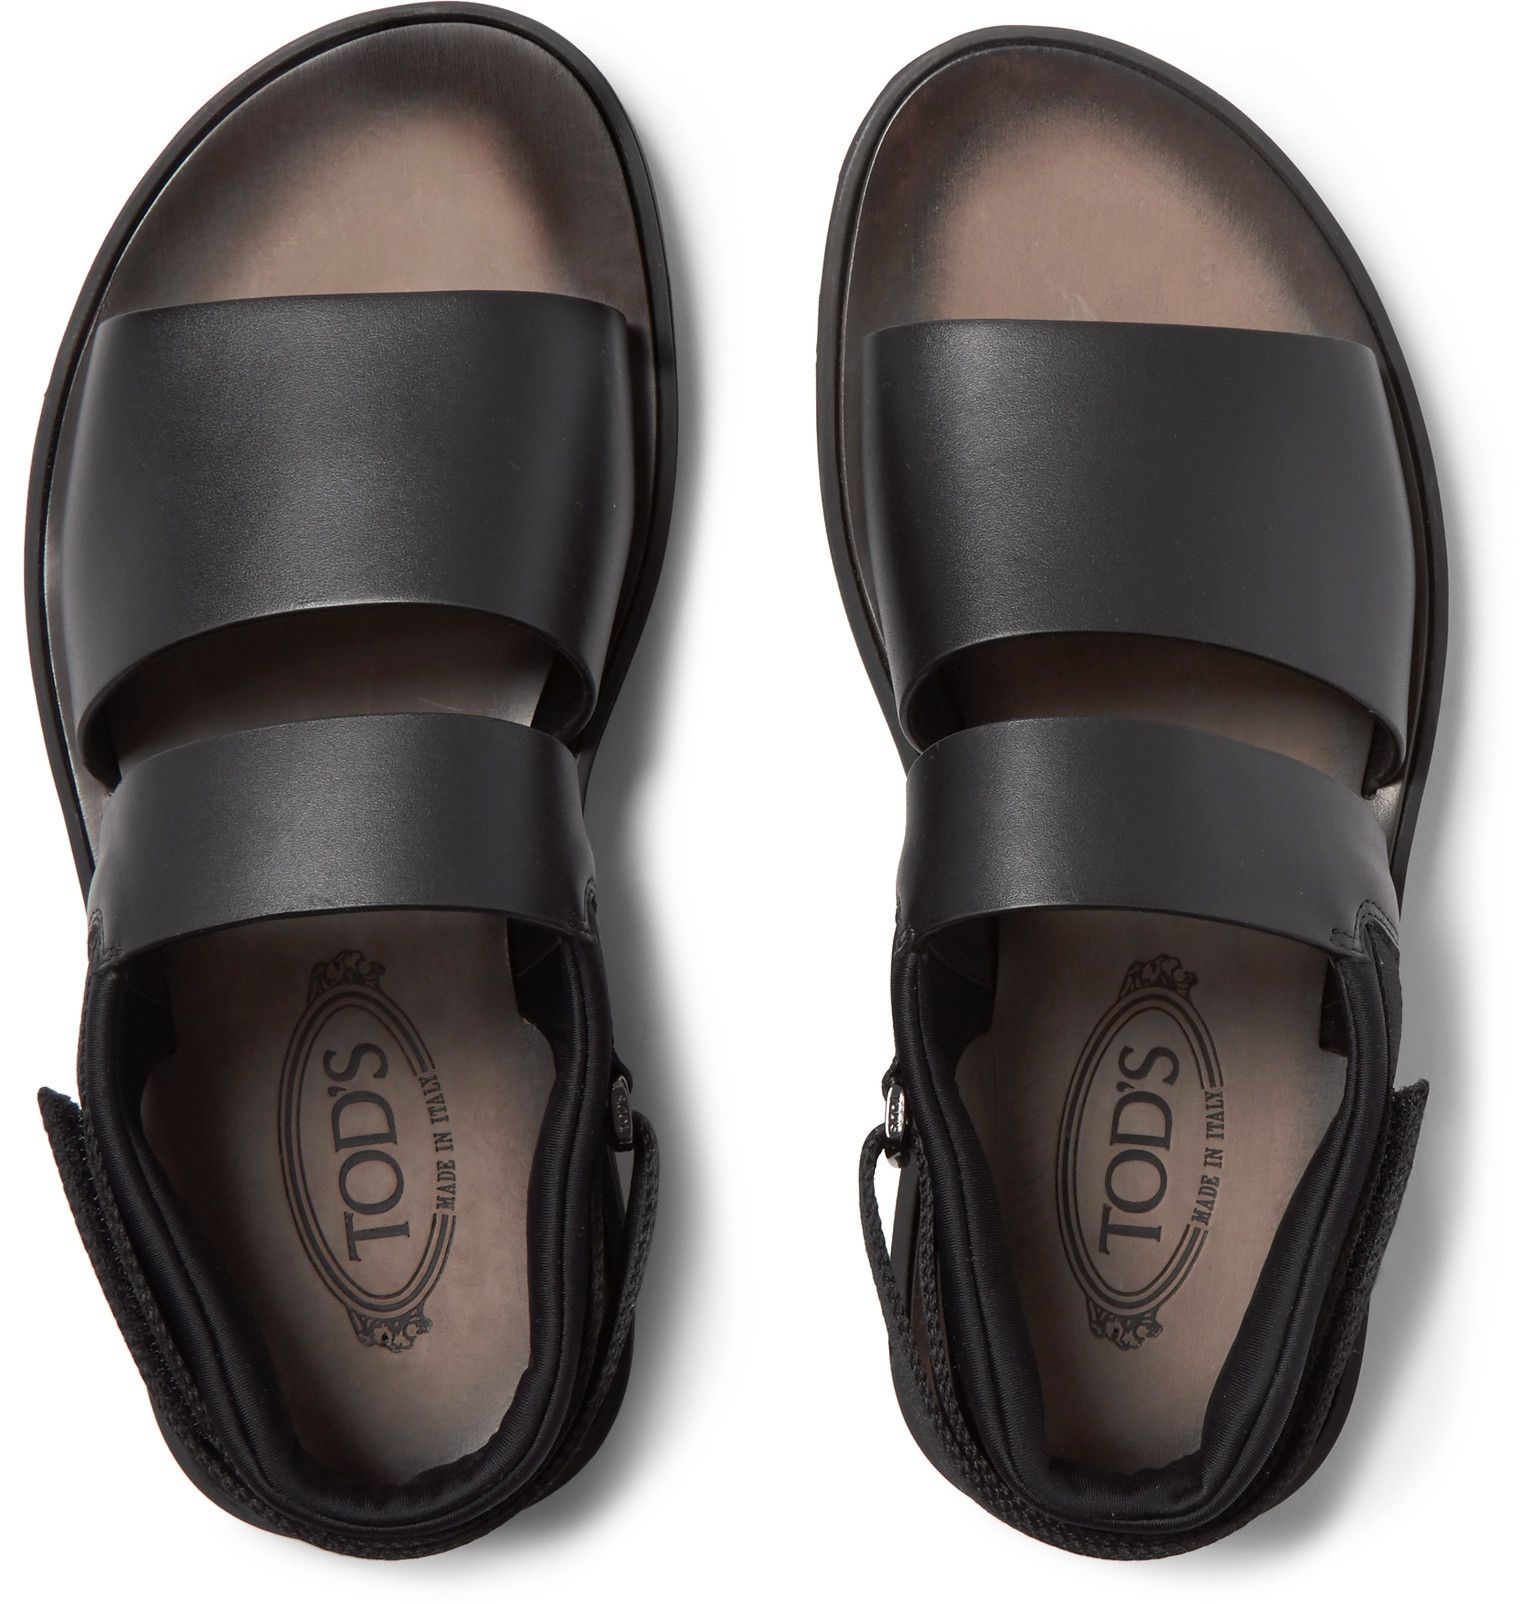 c4dbe17b TOD'S Neoprene-Trimmed Leather Sandals | men's sandals in 2019 ...